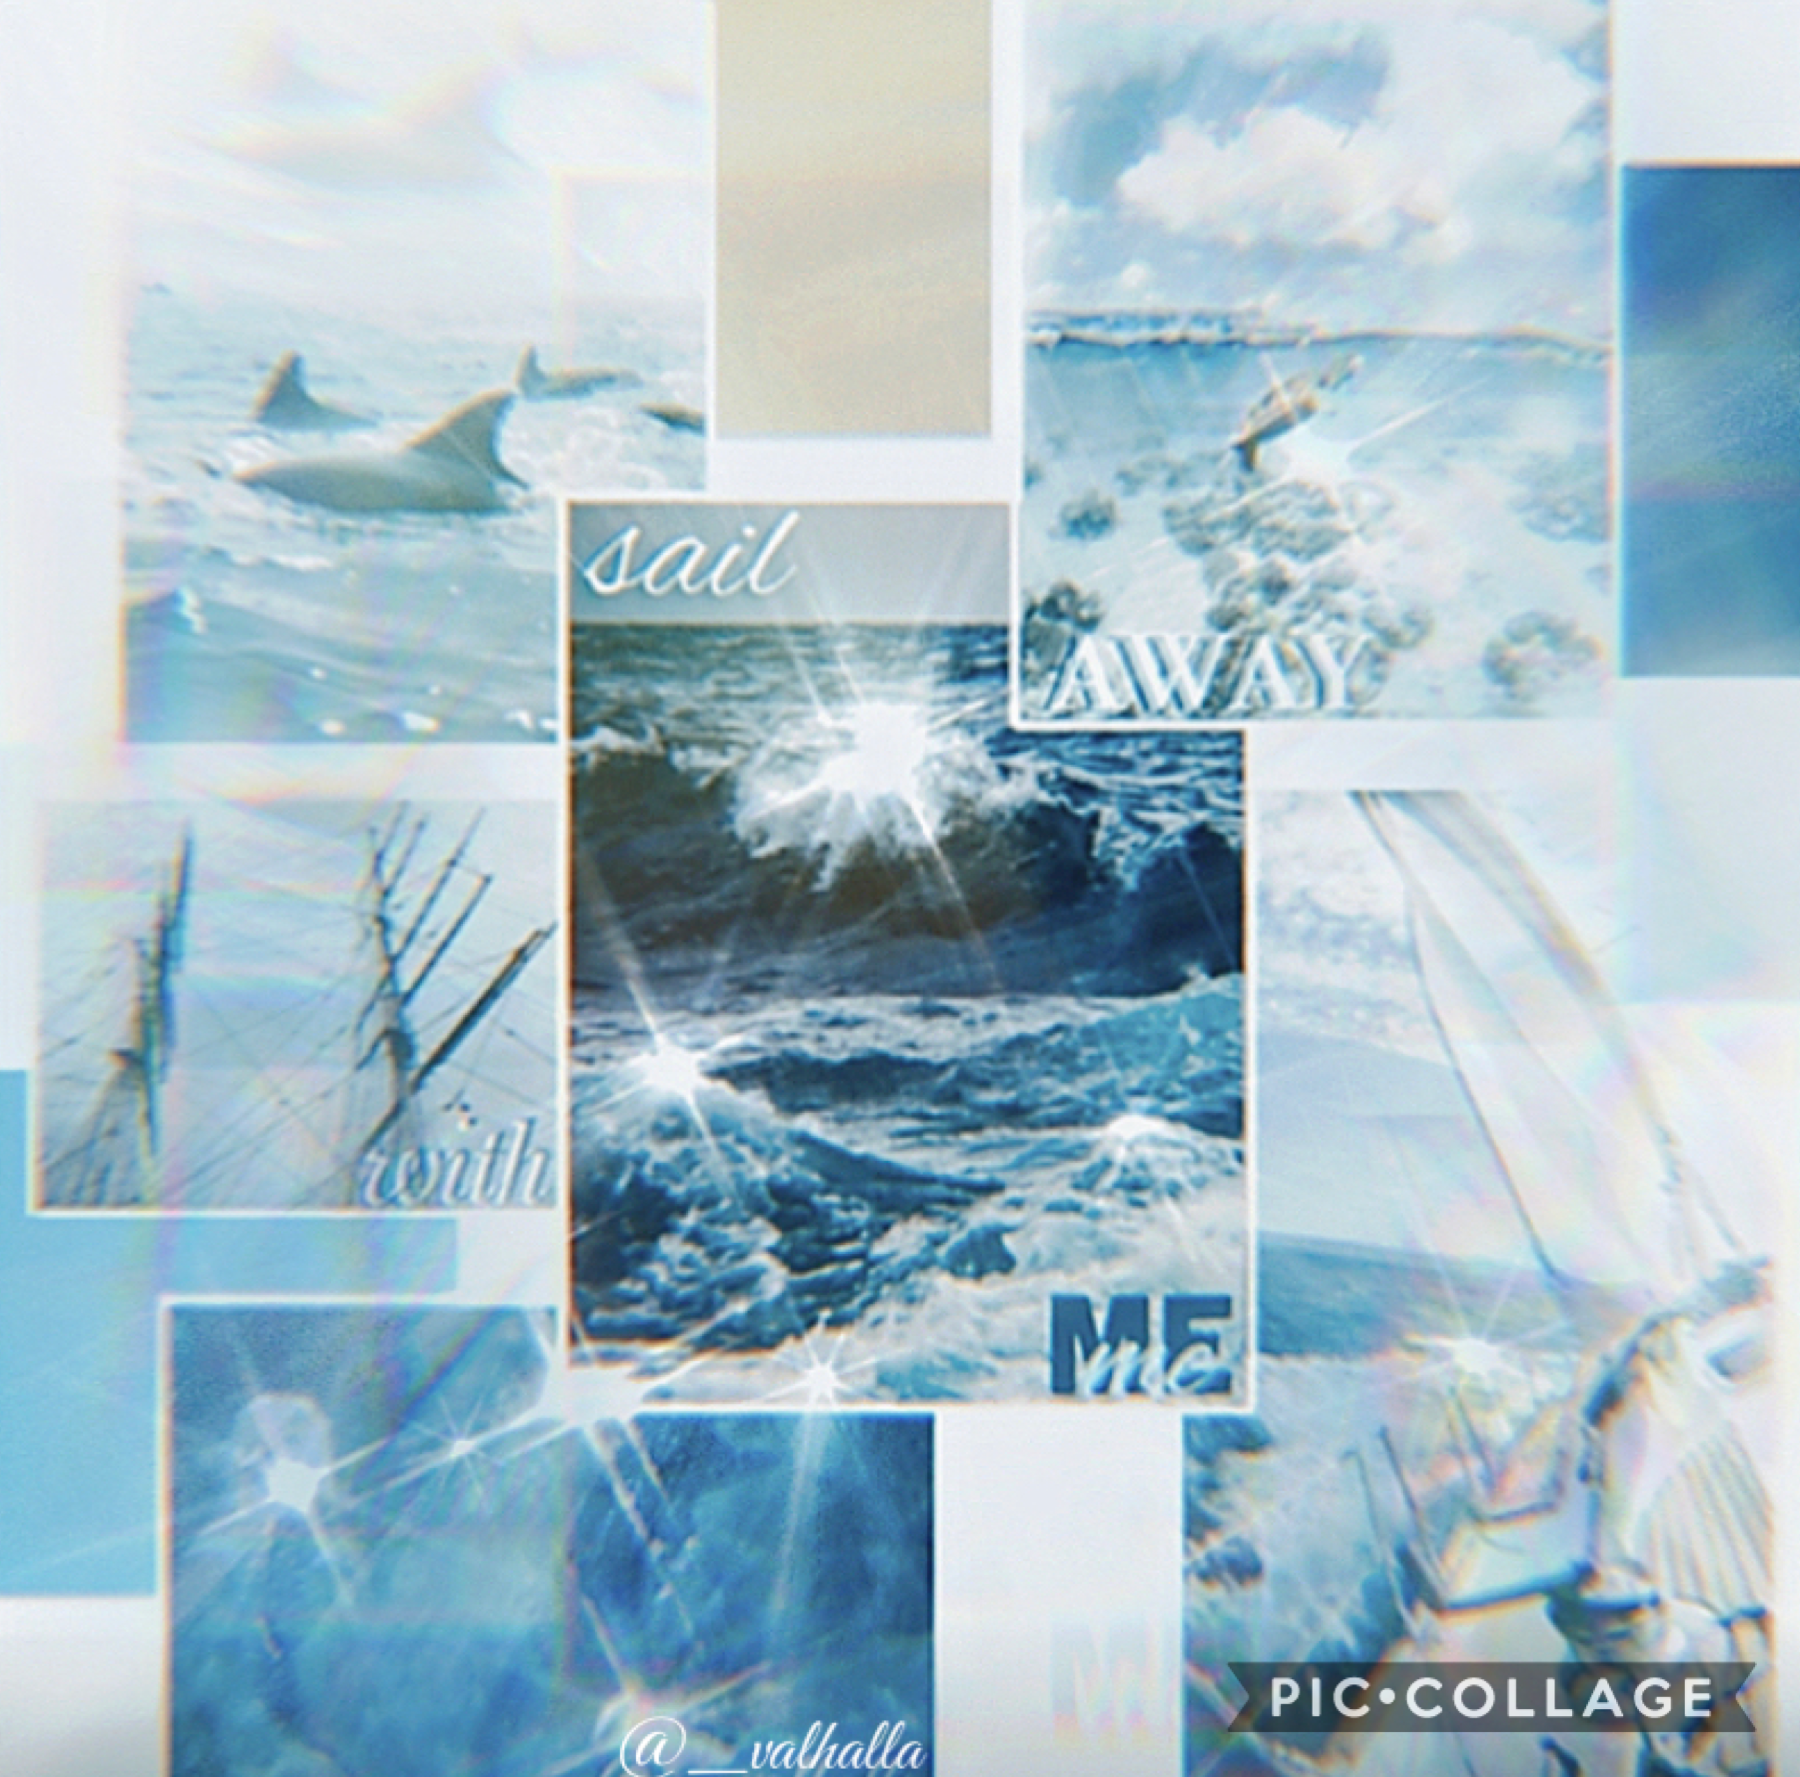 🌊tap!🌊 This is my entry to round one of @TheCraftyAdventurer 's summer games.  It took me about 20 mins, so not my best but it matches my aesthetic so I'm posting it. That's all for this episode of ✨The Adventures of Magic Mushroom✨ Peace out loves, xo 🌊